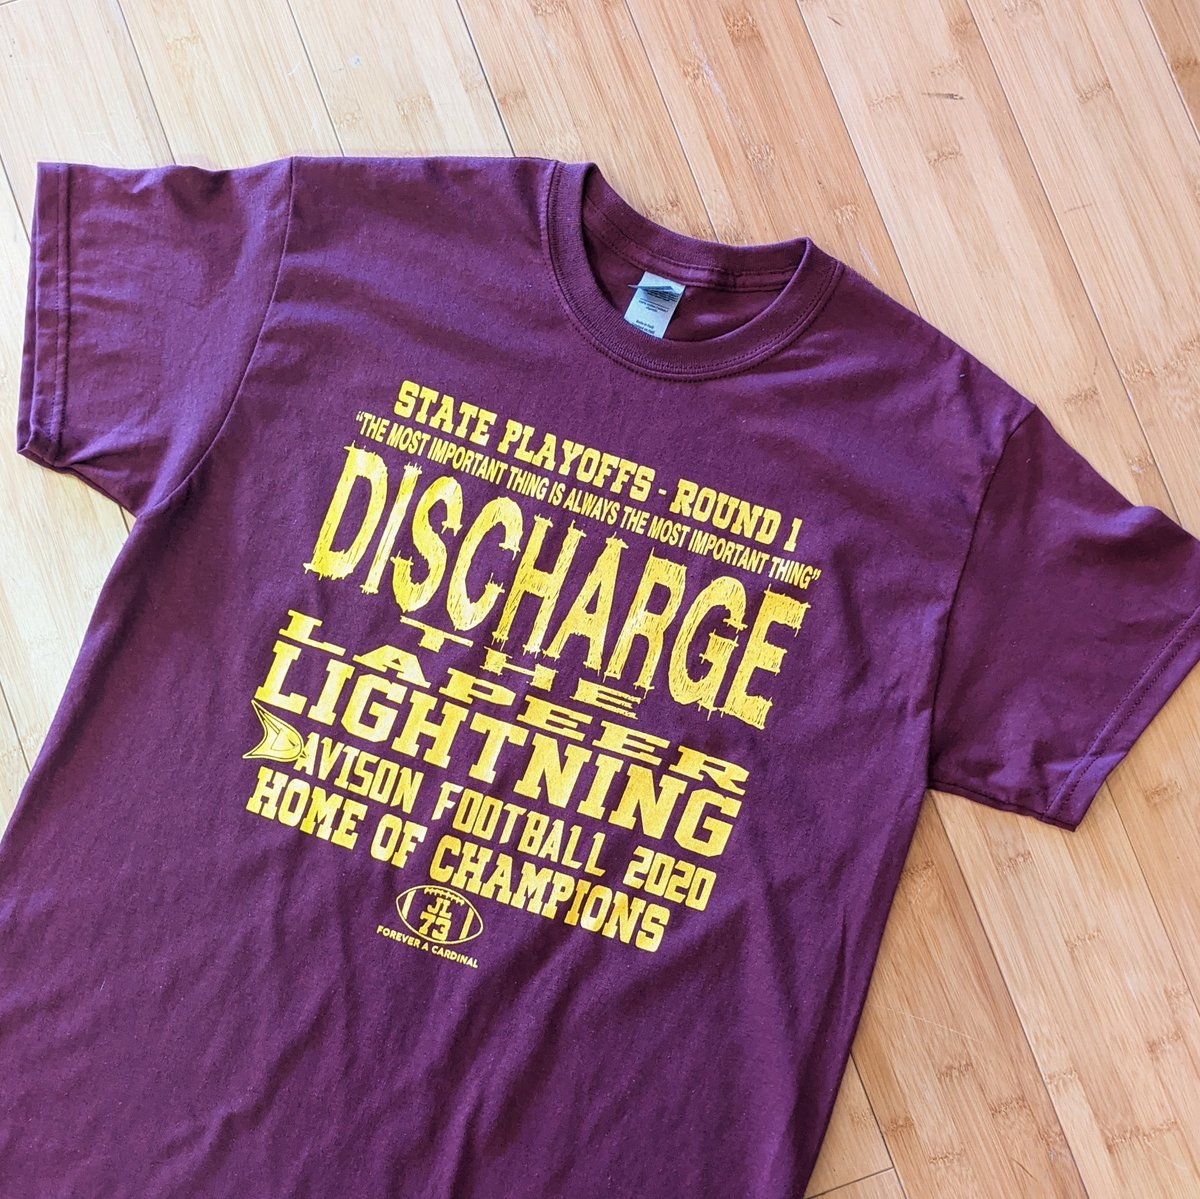 DISCHARGE THE LAPEER LIGHTNING! Round 1 - State Playoff DirtShirts are available now! New shirts every week.. collect 'em all.. just $5 each.. Stop by and grab yours today! . . . #DavisonMade #GoCards #CardinalNation #DirtShirt #Football #screenprinting #tshirt #inspiration #art https://t.co/9Vpq7YcuWm